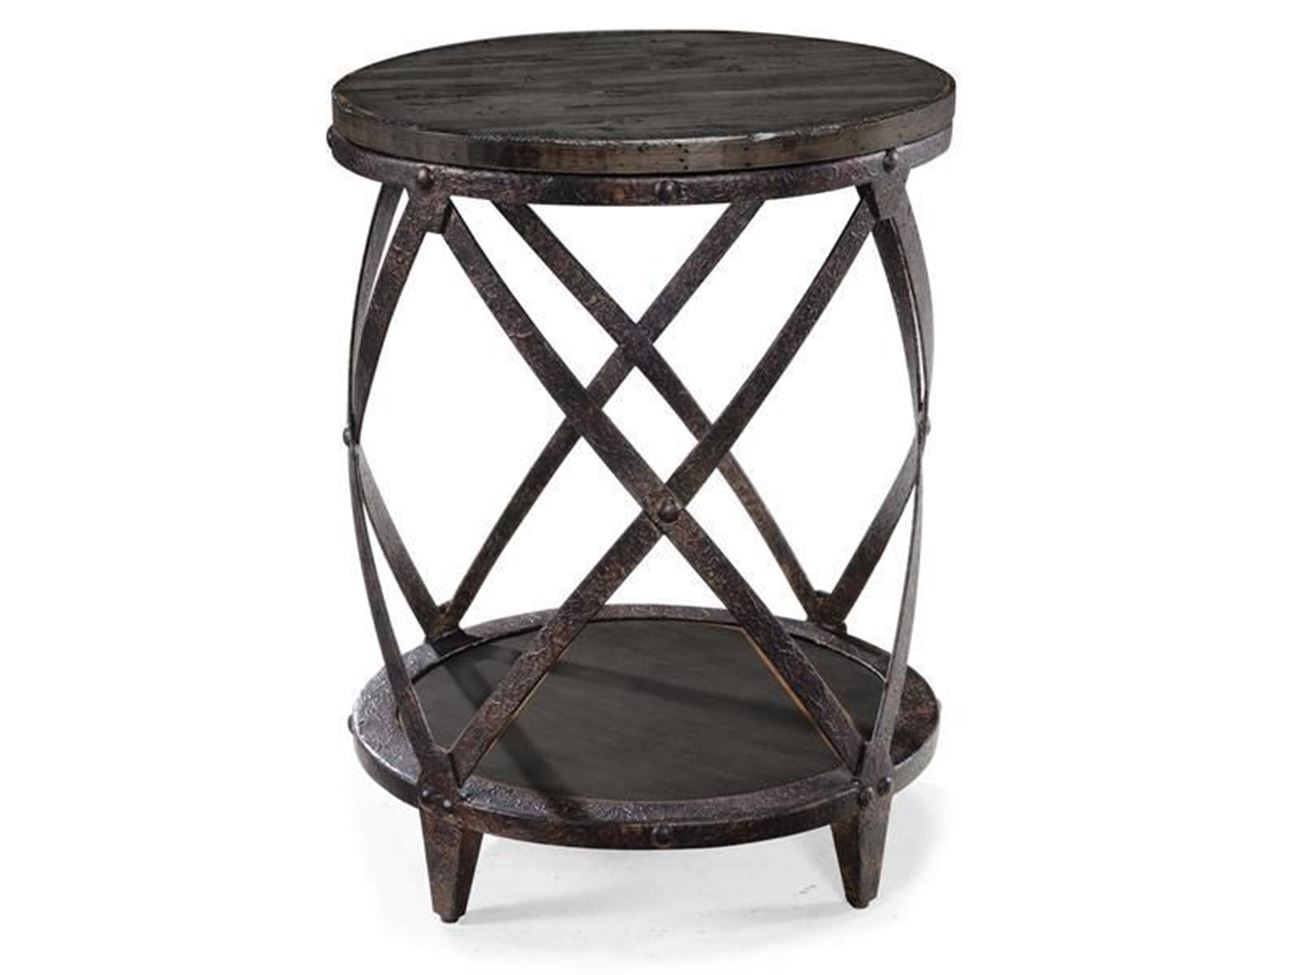 milford round accent table woodstock furniture mattress gray ture coffee ideas small decorative chest drawers real wood knotty pine bar stools dining room chairs with arms west